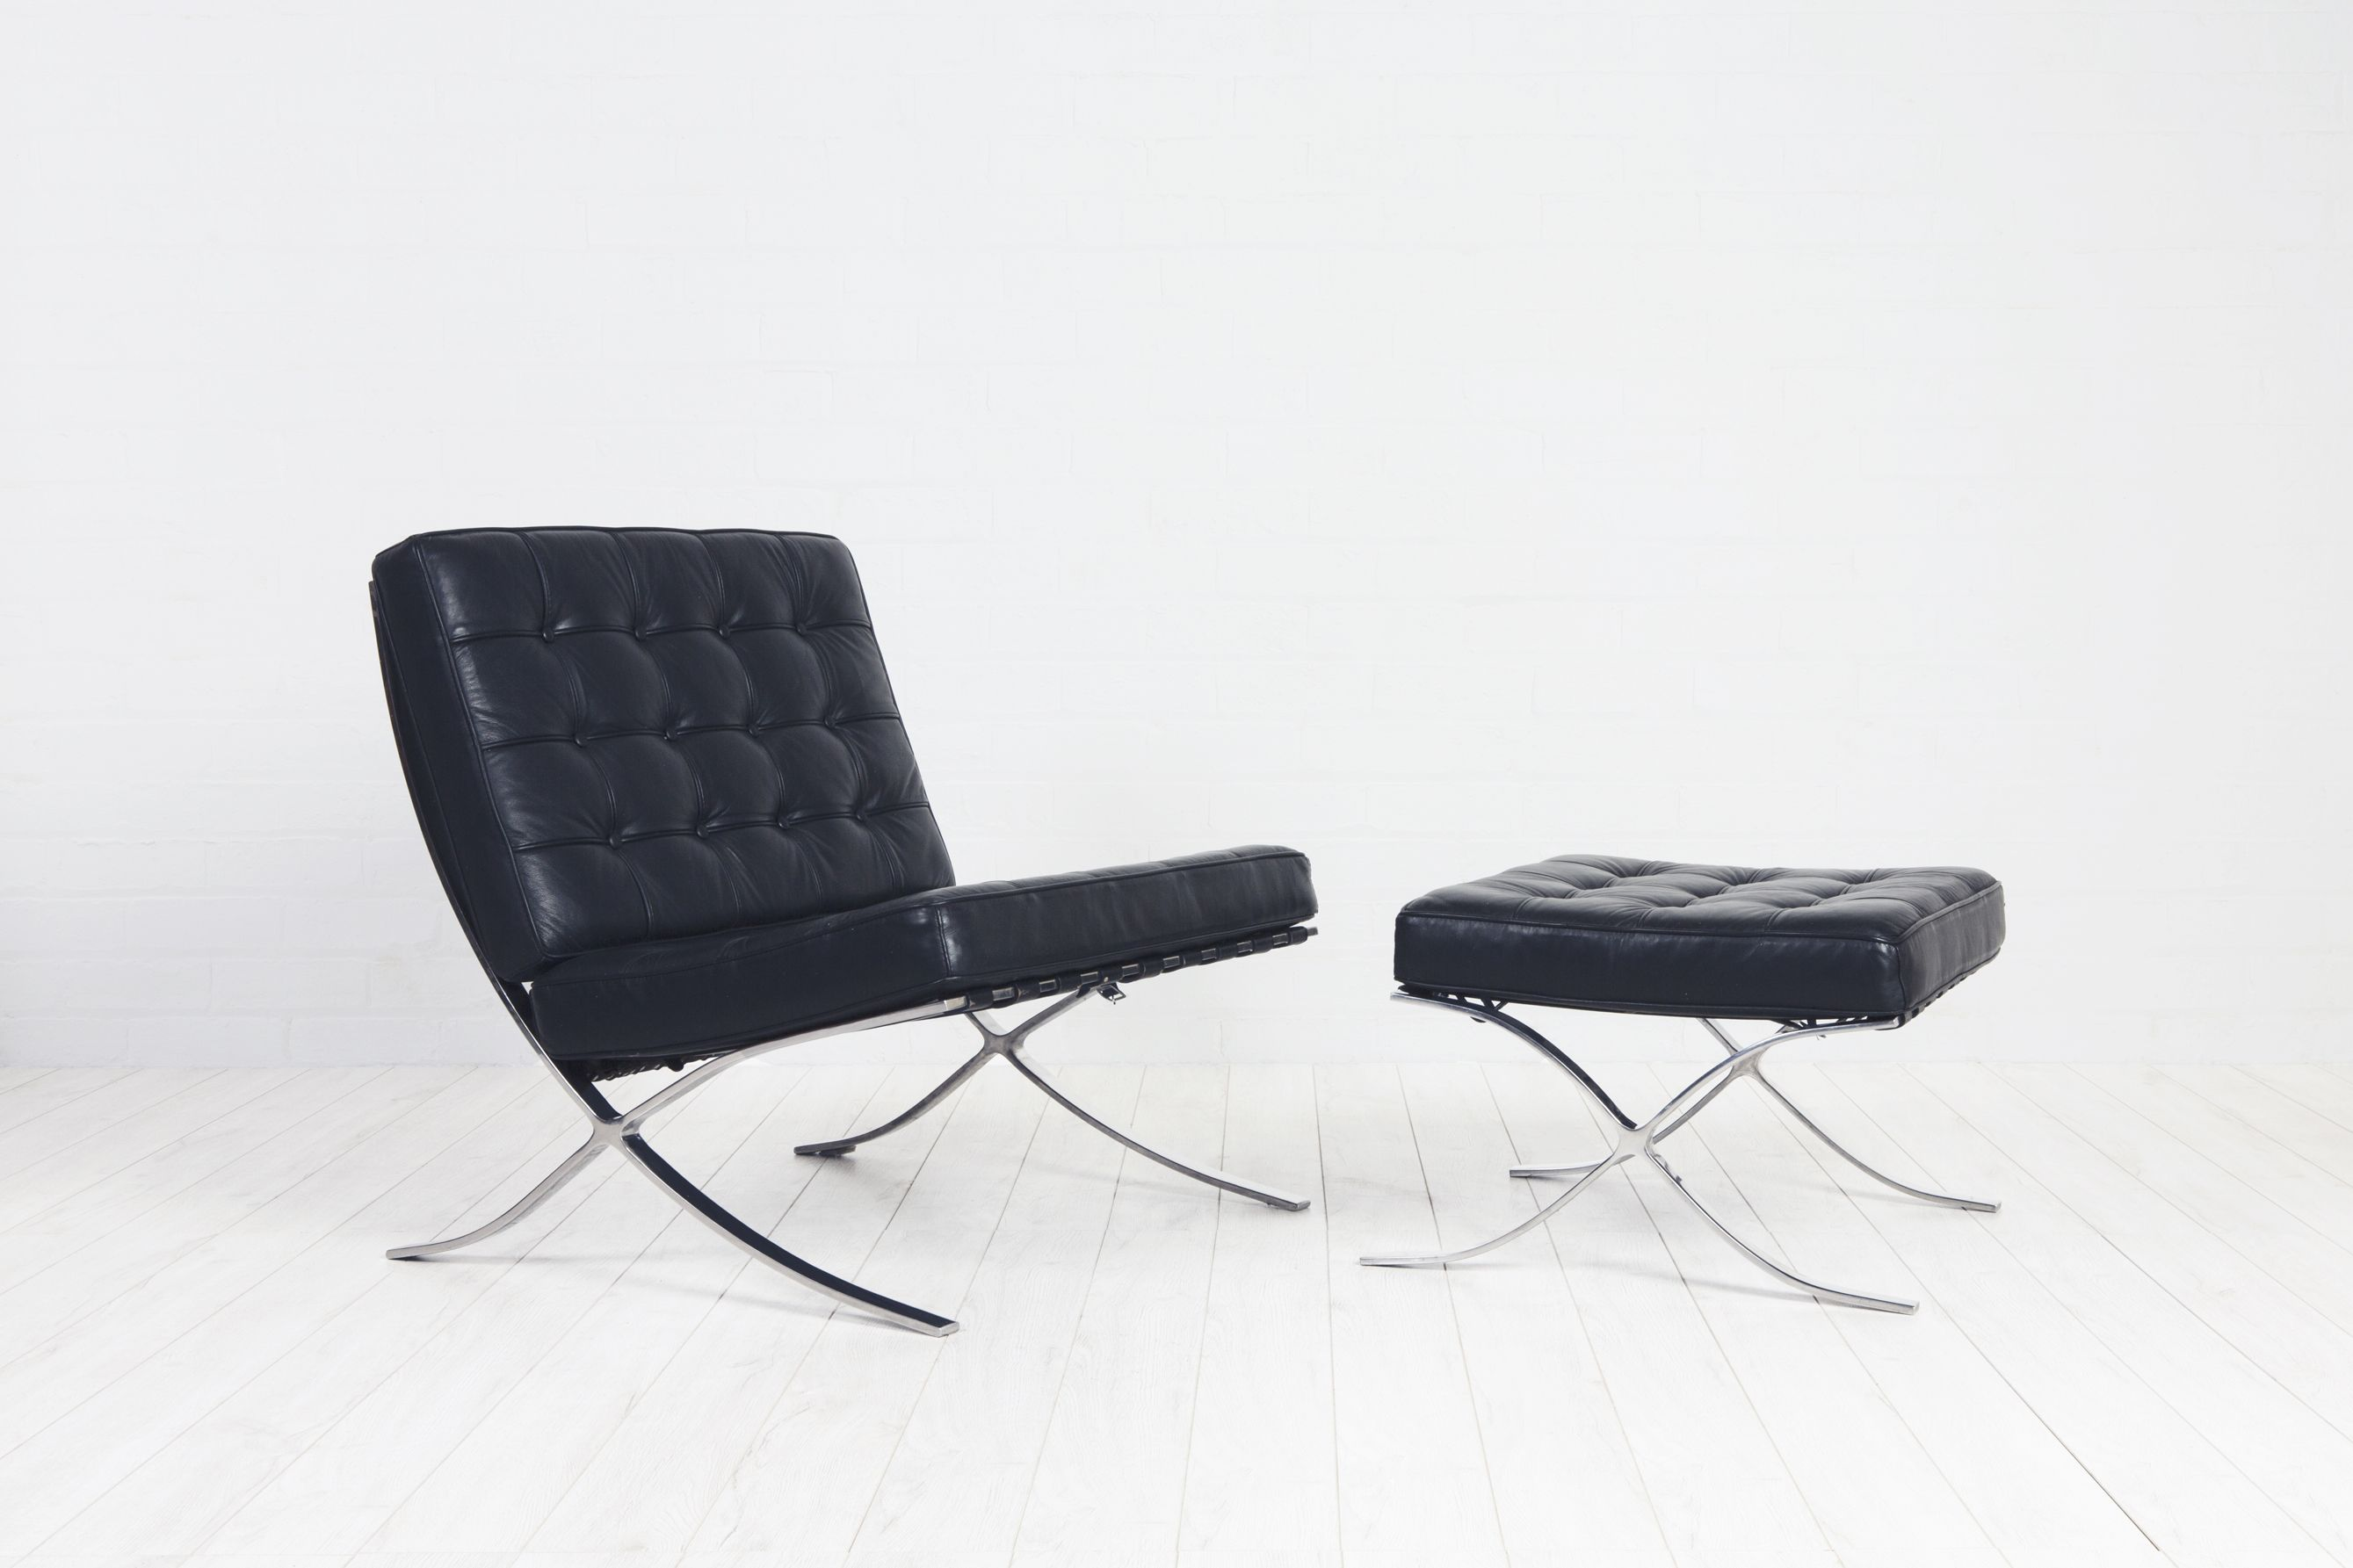 Barcelona Style Chair And Footstool After Mies Van Der Rohe. Grab Them Now  At Www